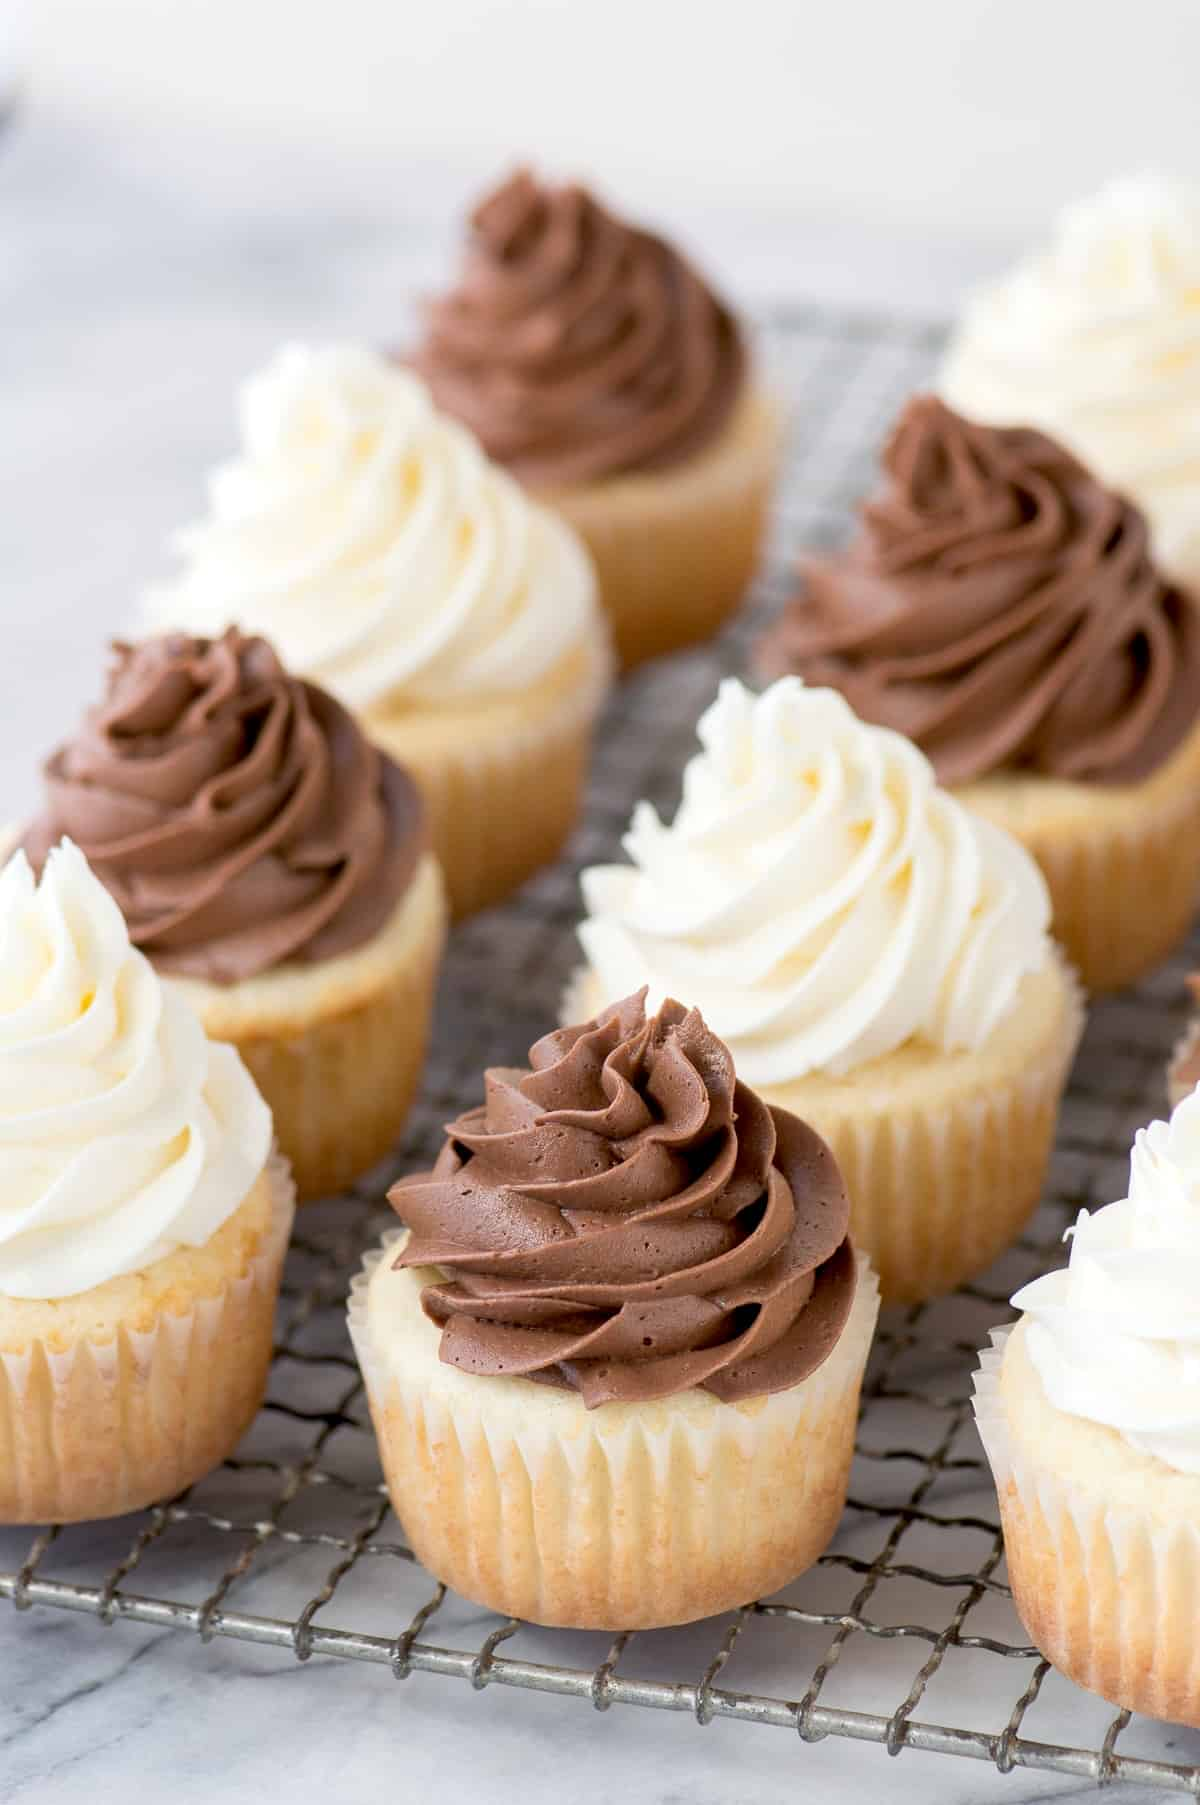 vanilla cupcakes with chocolate and white frosting on metal cooling rack on marble background